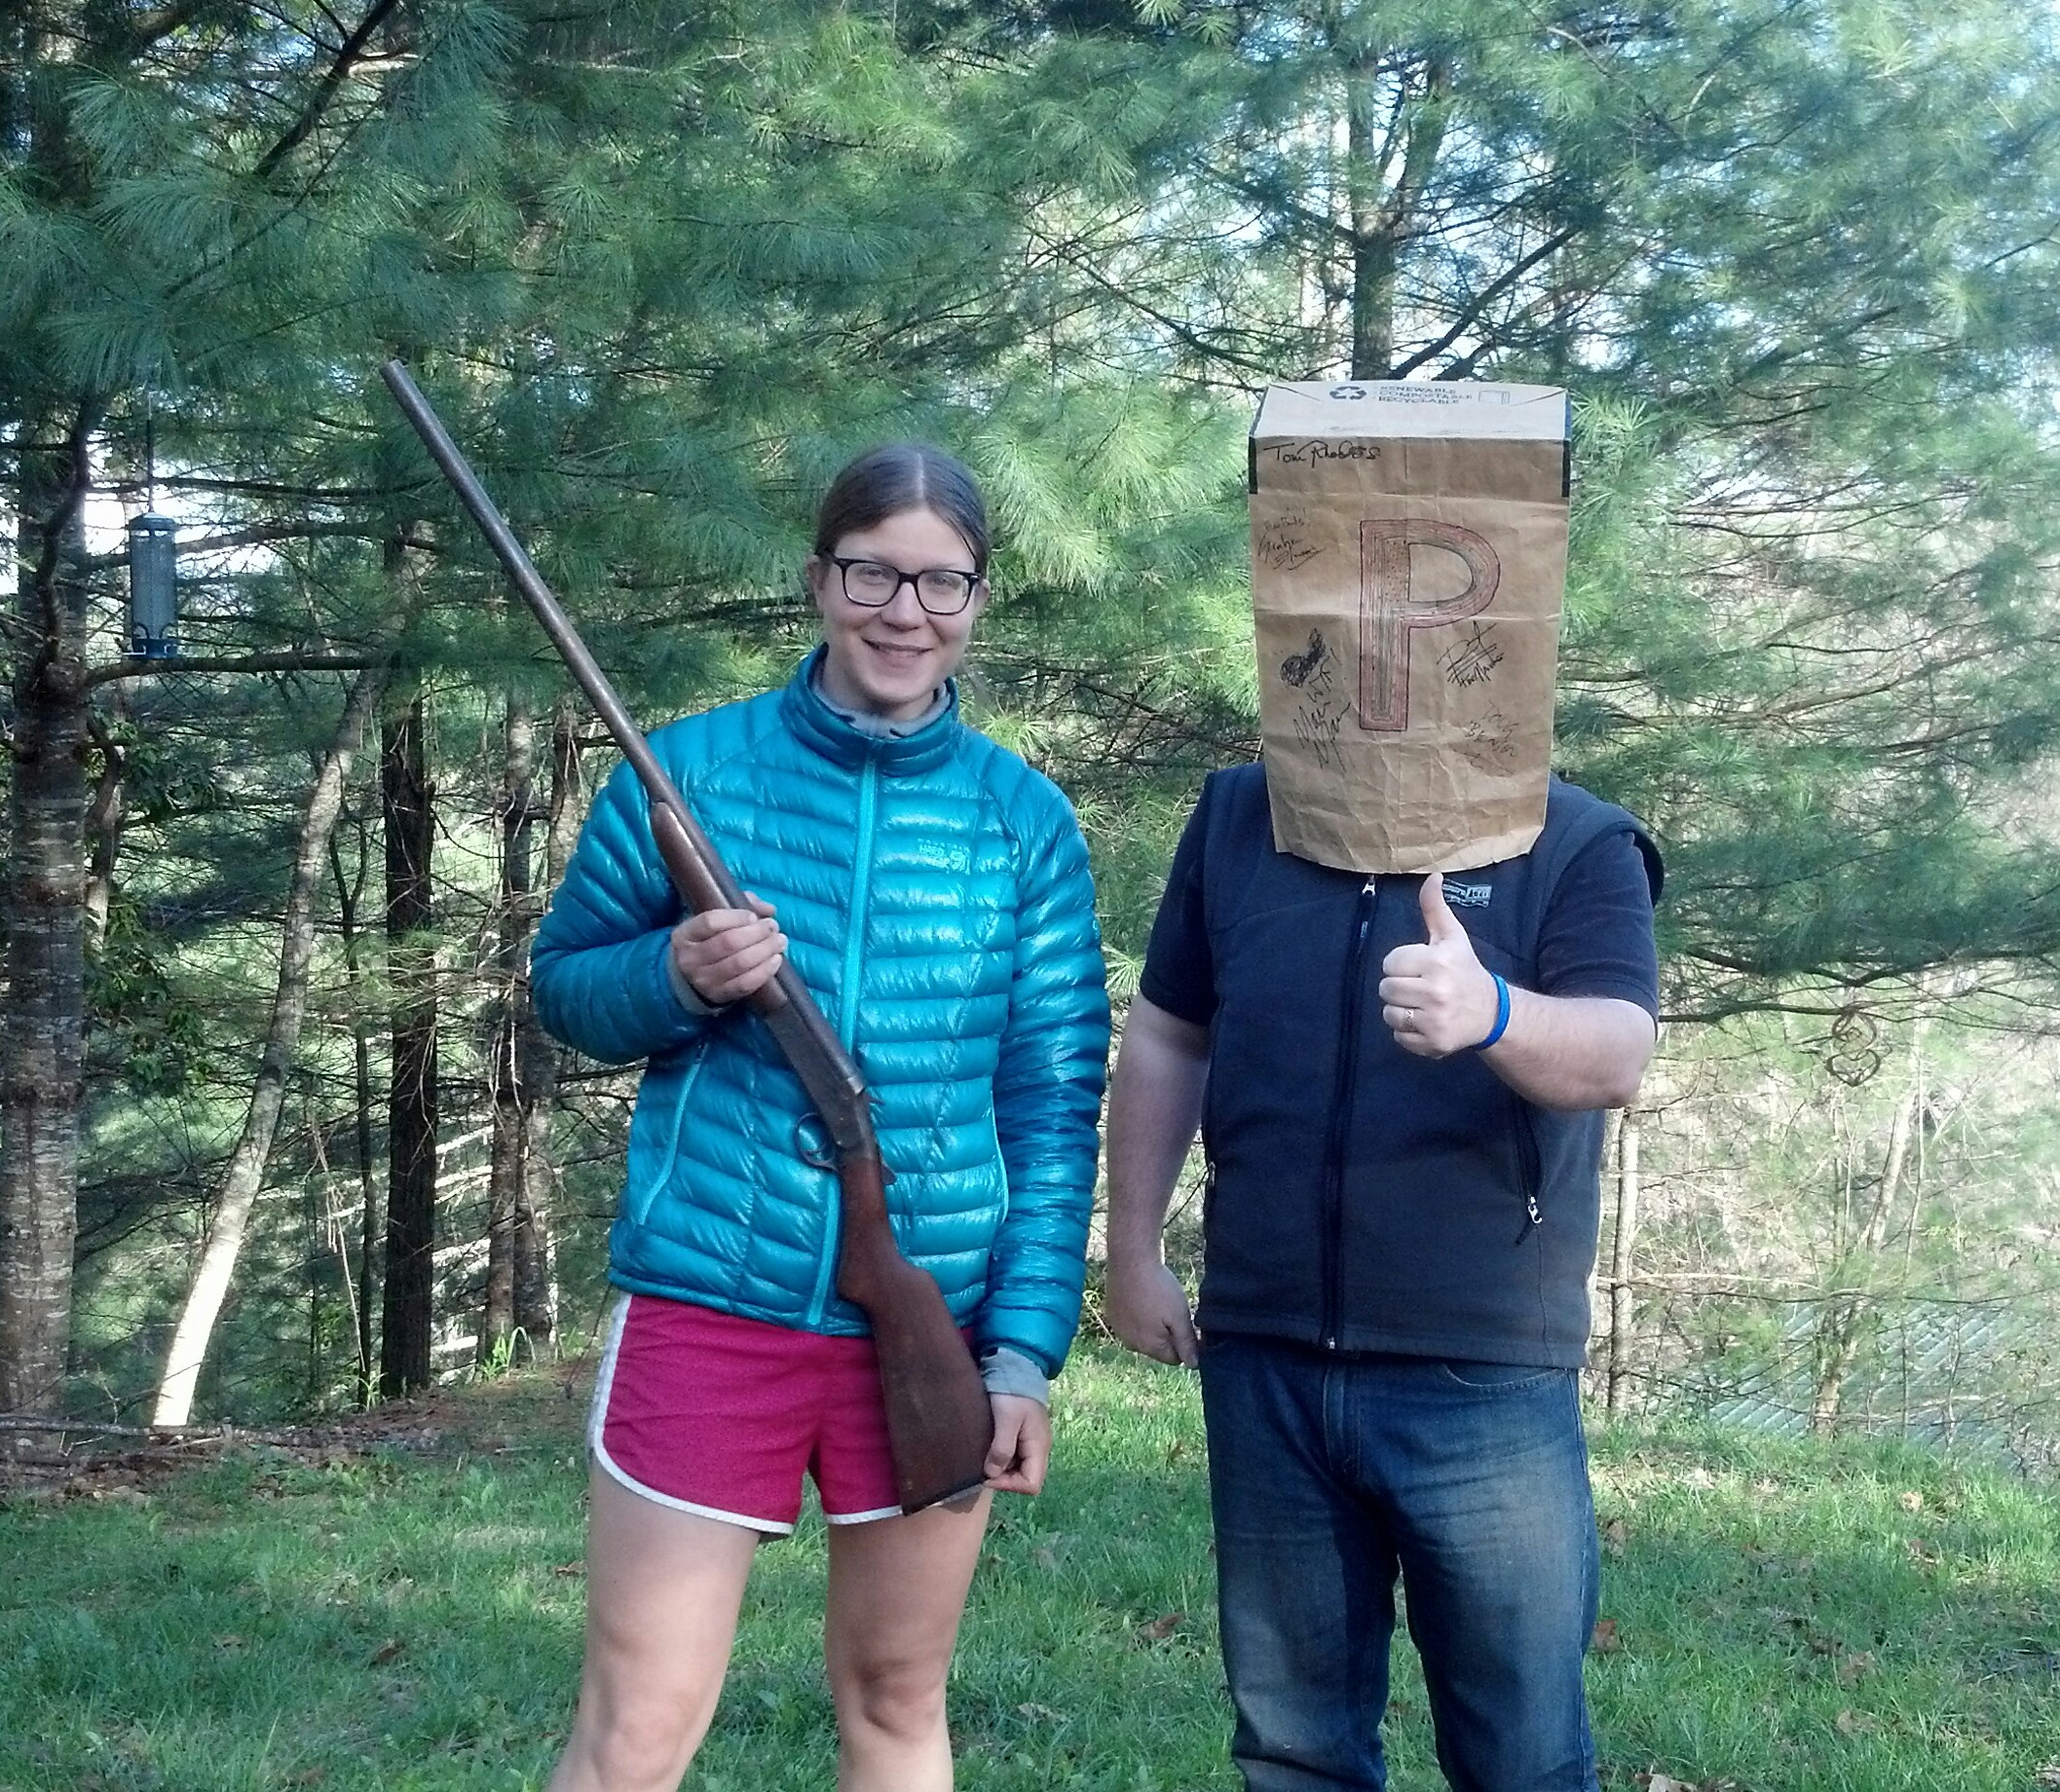 THE POX and PUSS PODCAST : An Appalachian Trail Thru-Hiker Experience